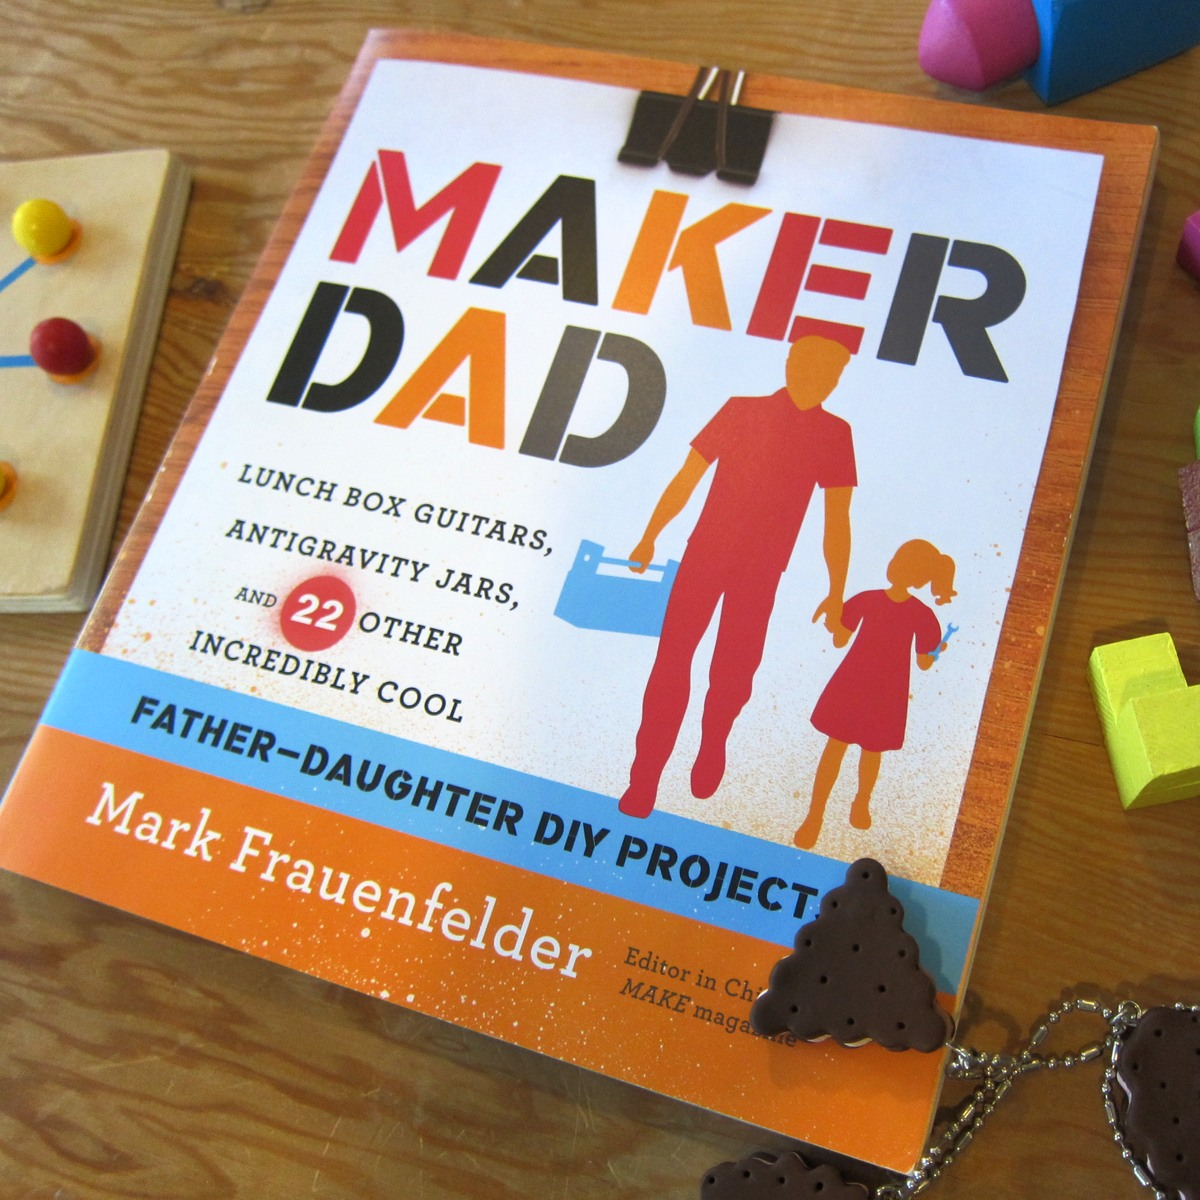 The Maker Dad book: A Father's Day gift for the DIY dad in your life